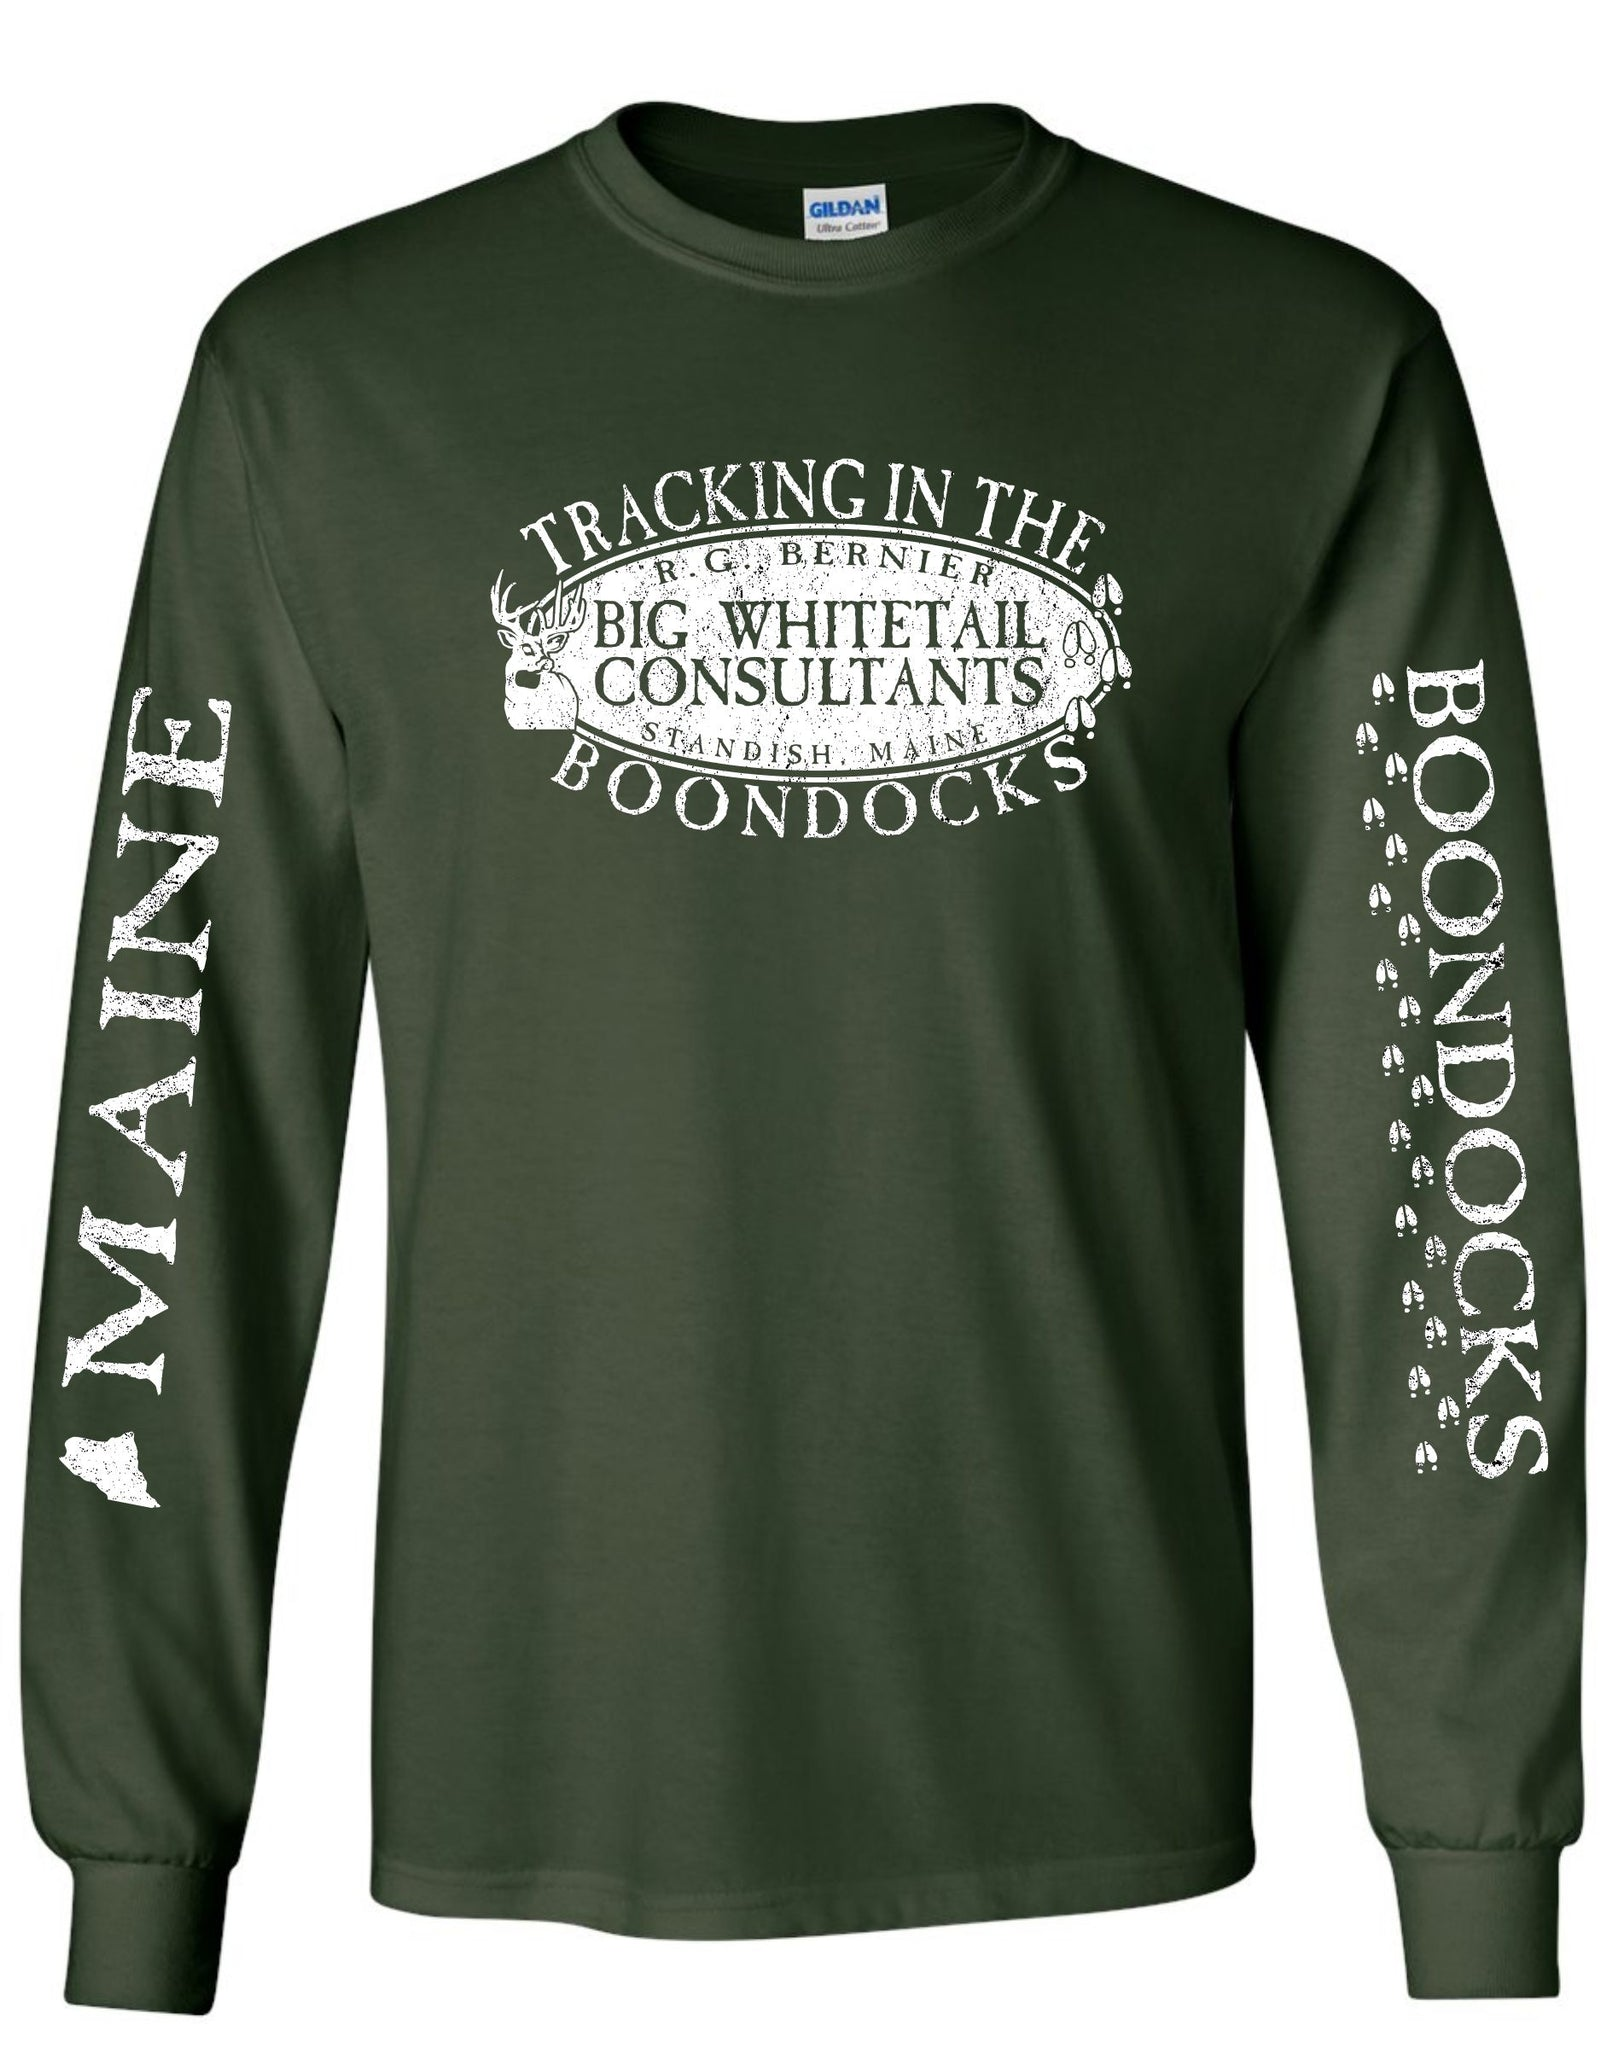 Boondocks Long Sleeve Tee TRACKING IN THE BOONDOCKS • R.G. BERNIER MAINE